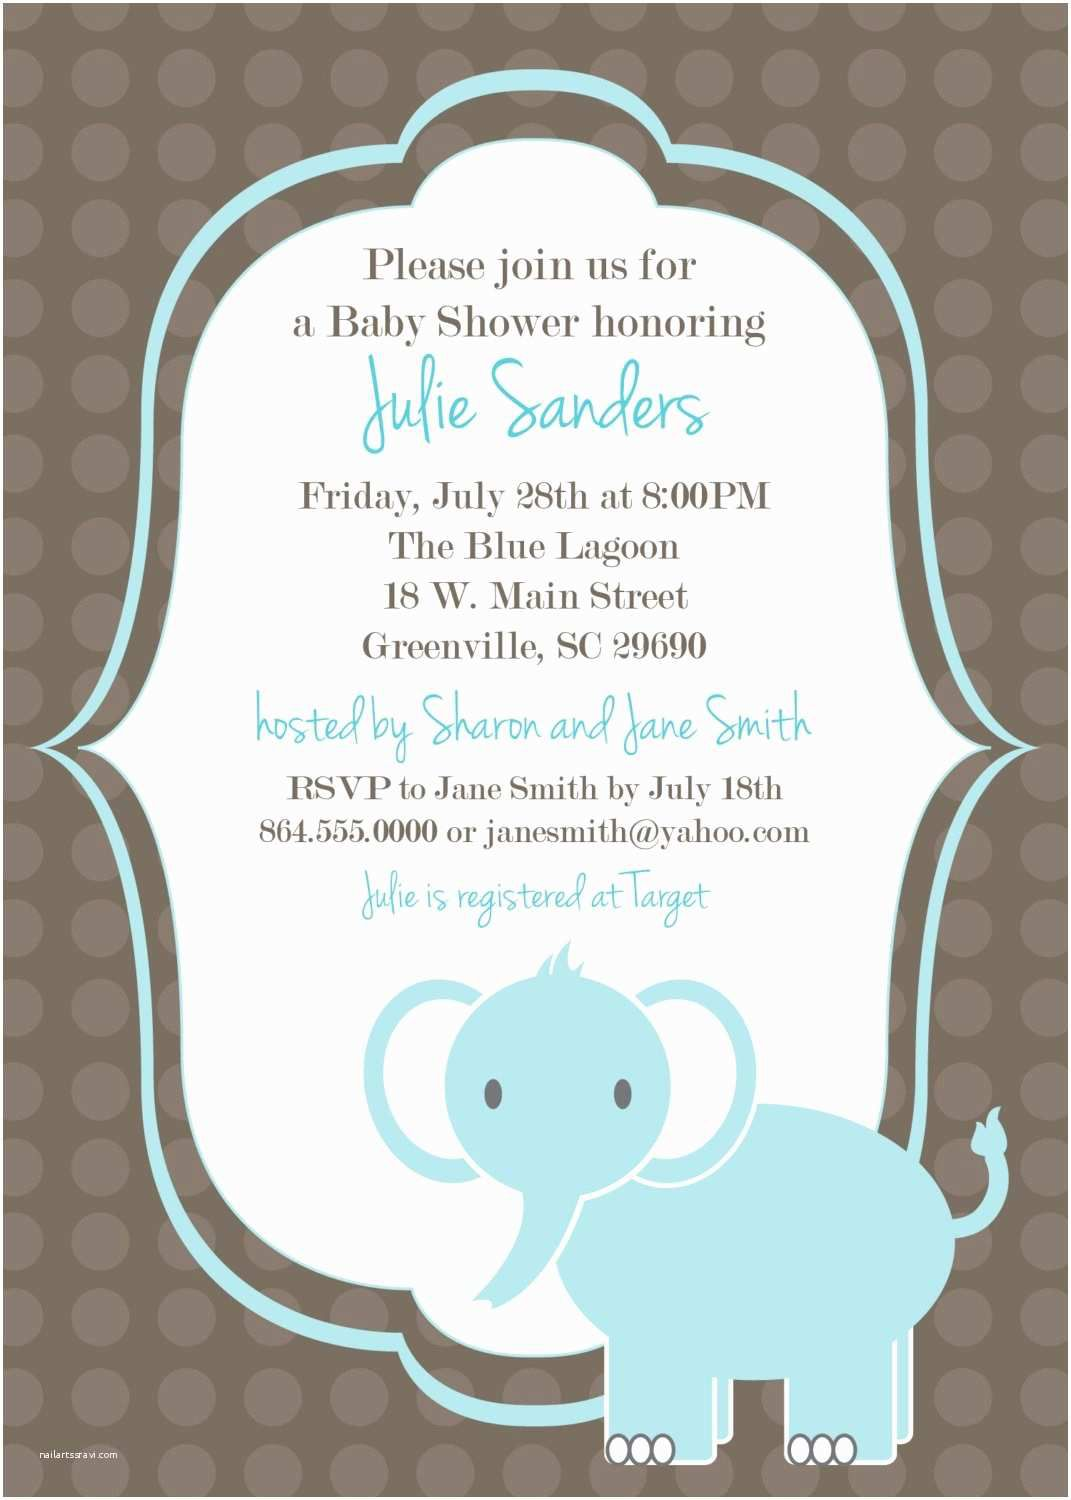 002 Archaicawful Baby Shower Invitation Template Word Photo  Office Wording Sample Work DownloadFull